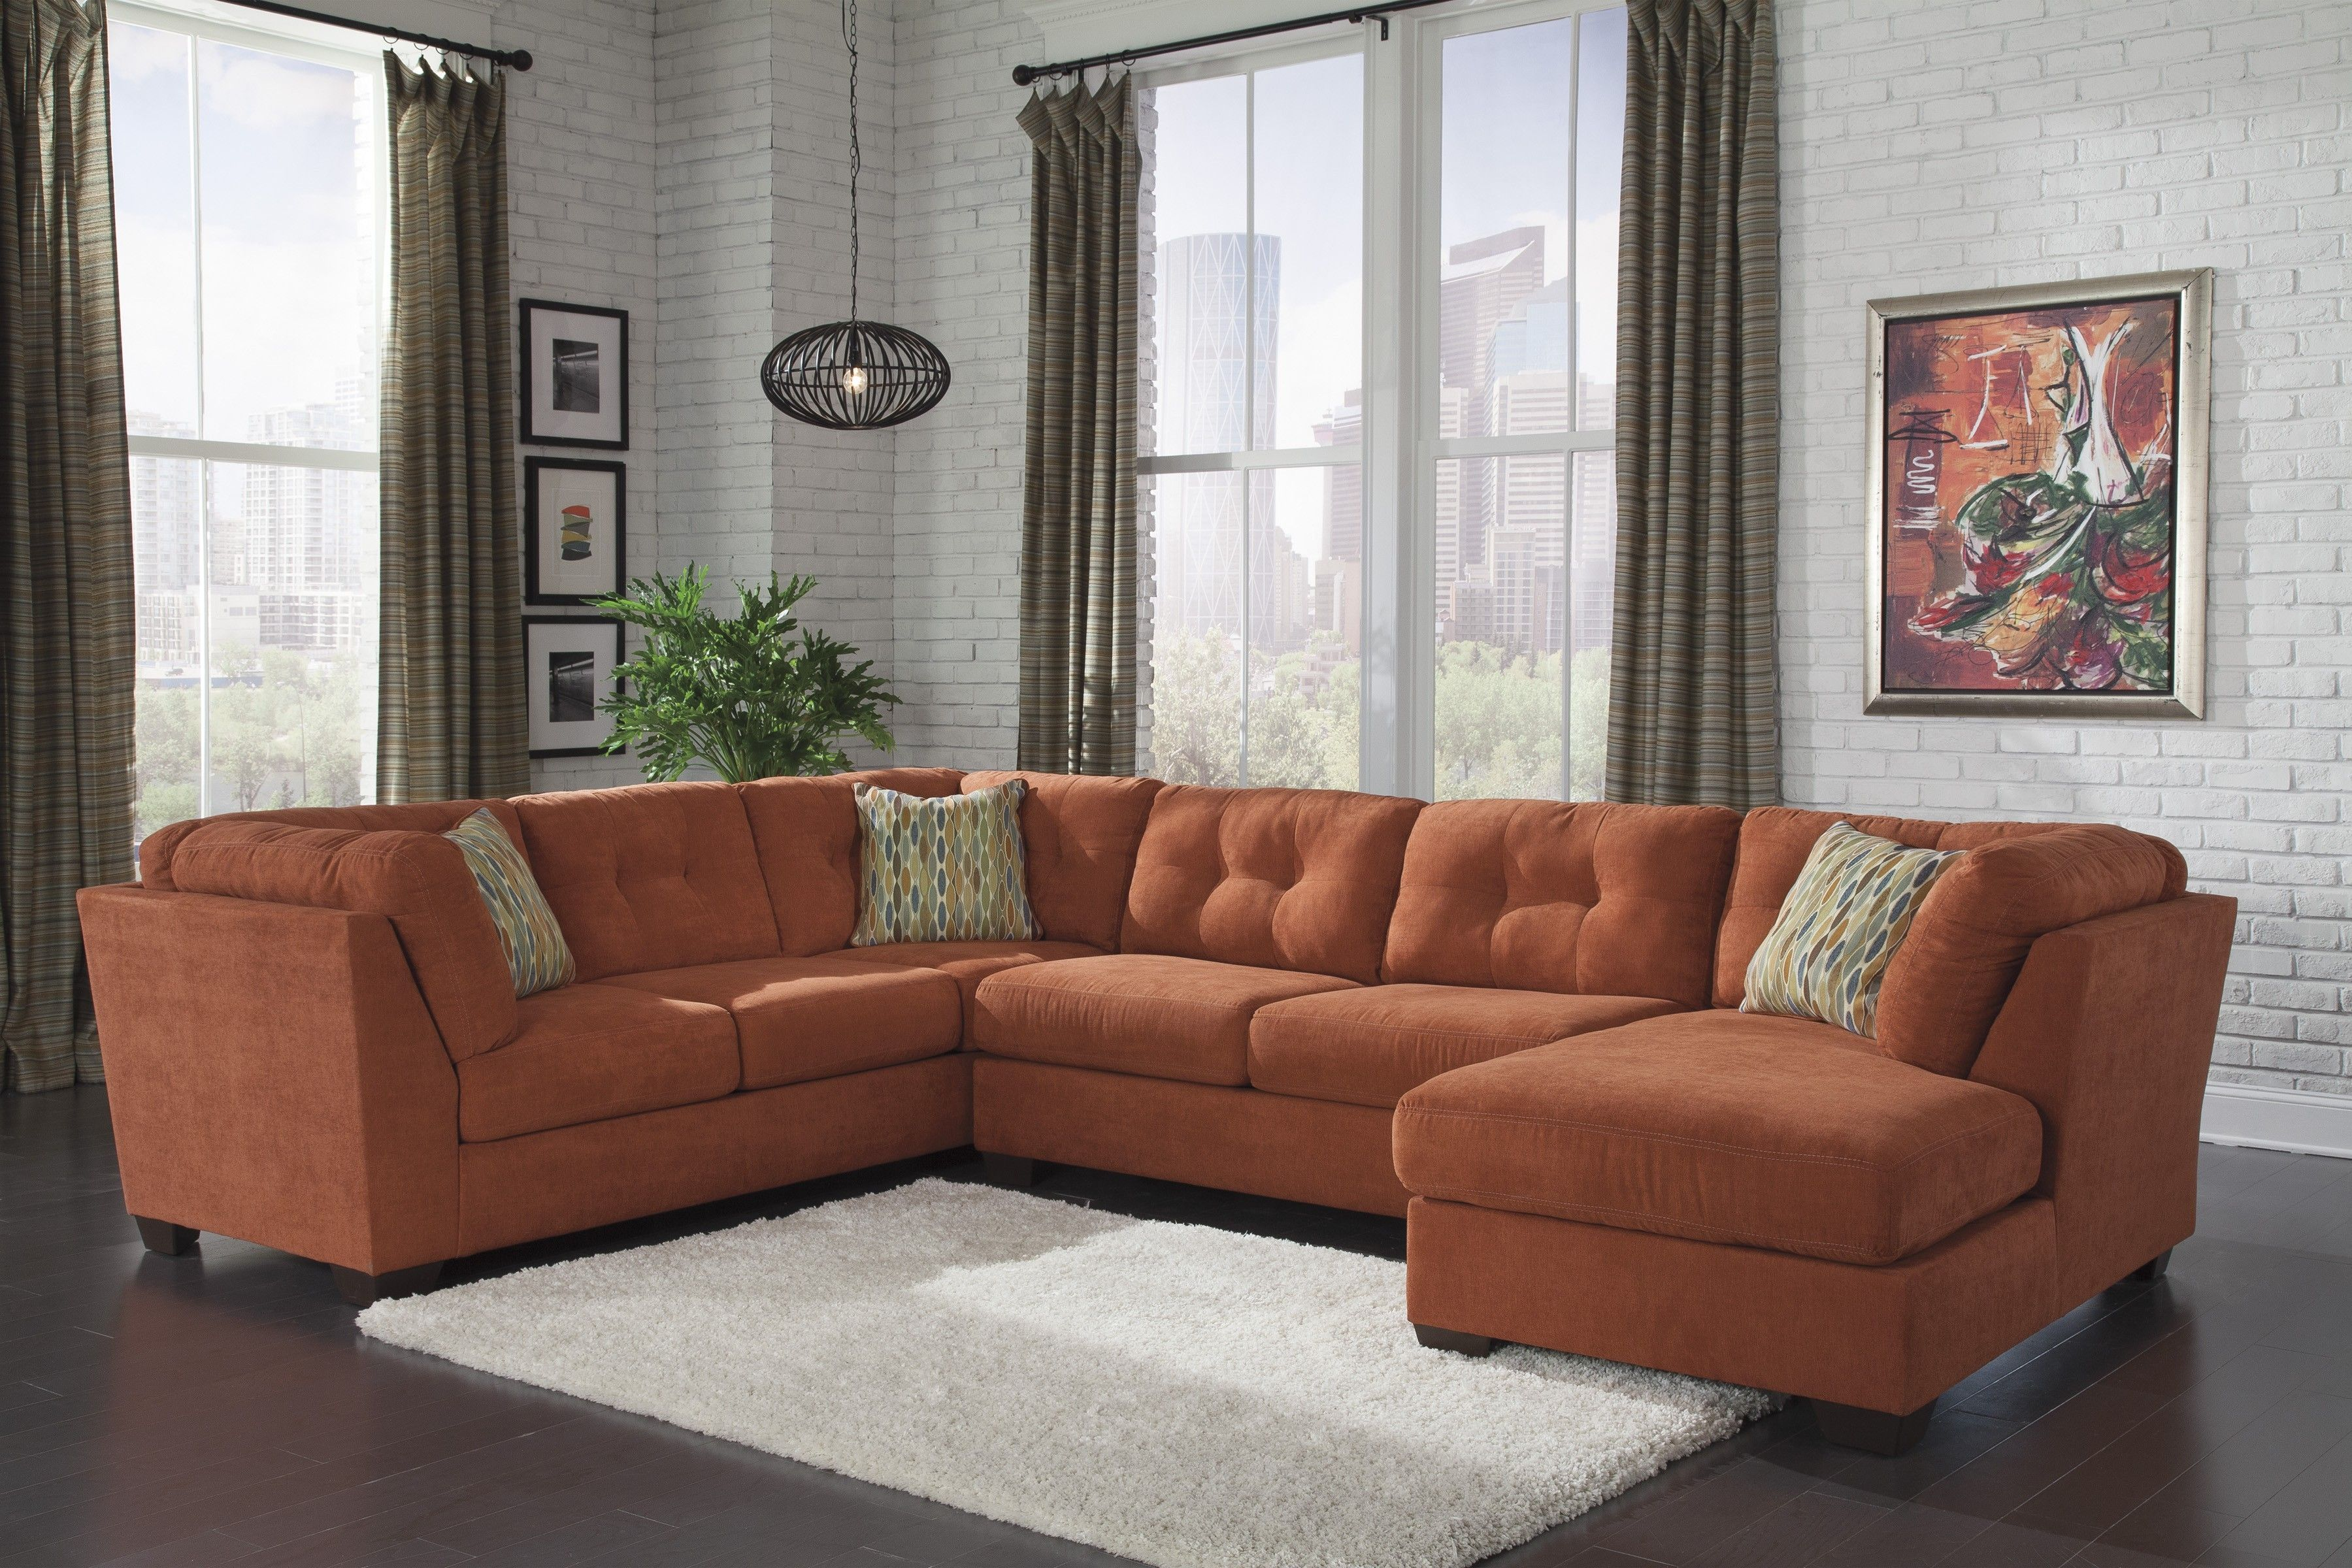 Rust Colored Sectional Sofas Pinterest